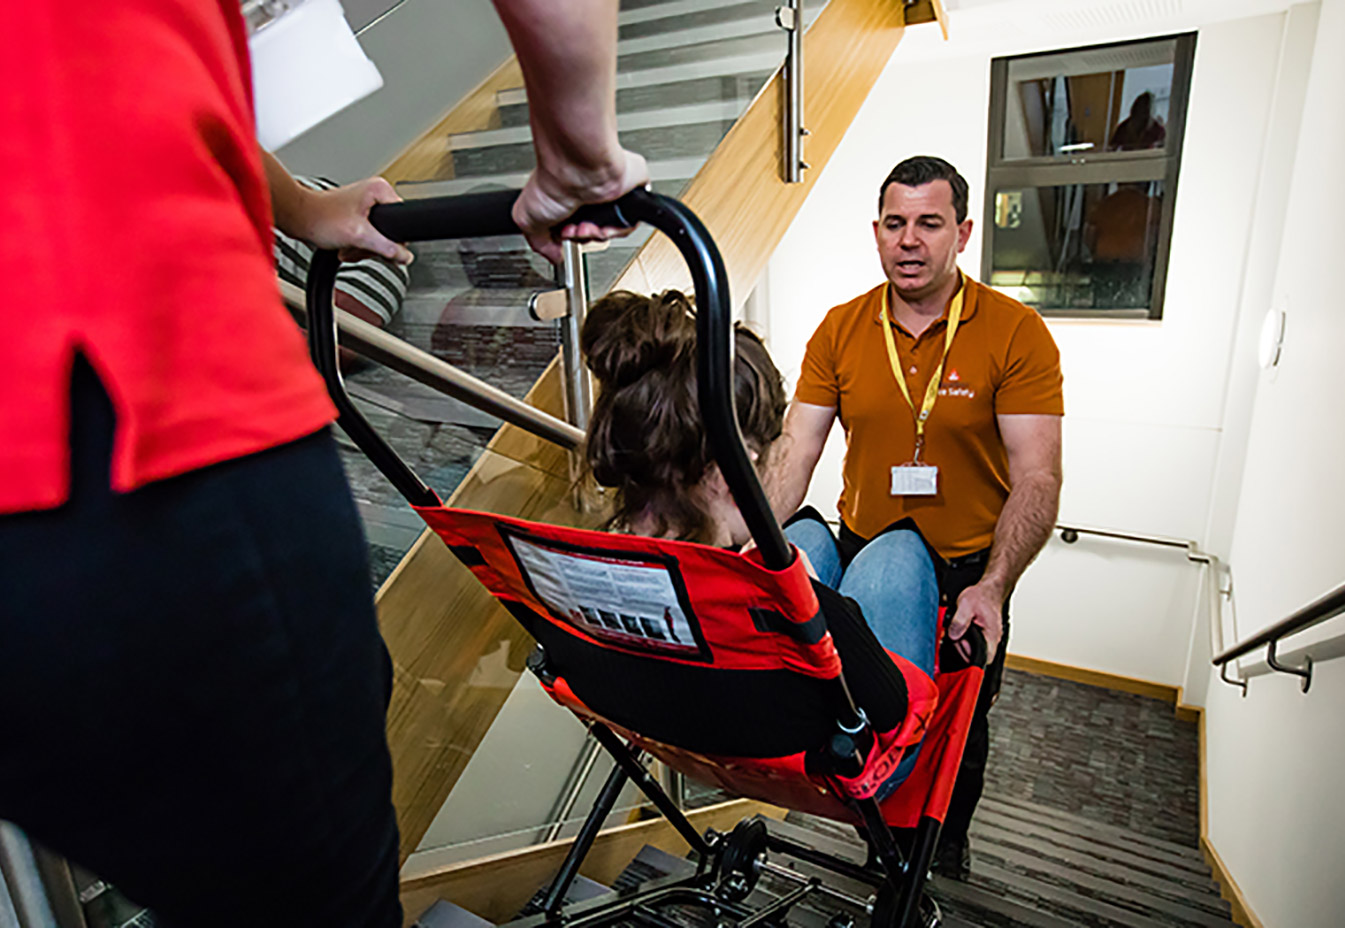 Evacuation chair training - a beginners guide